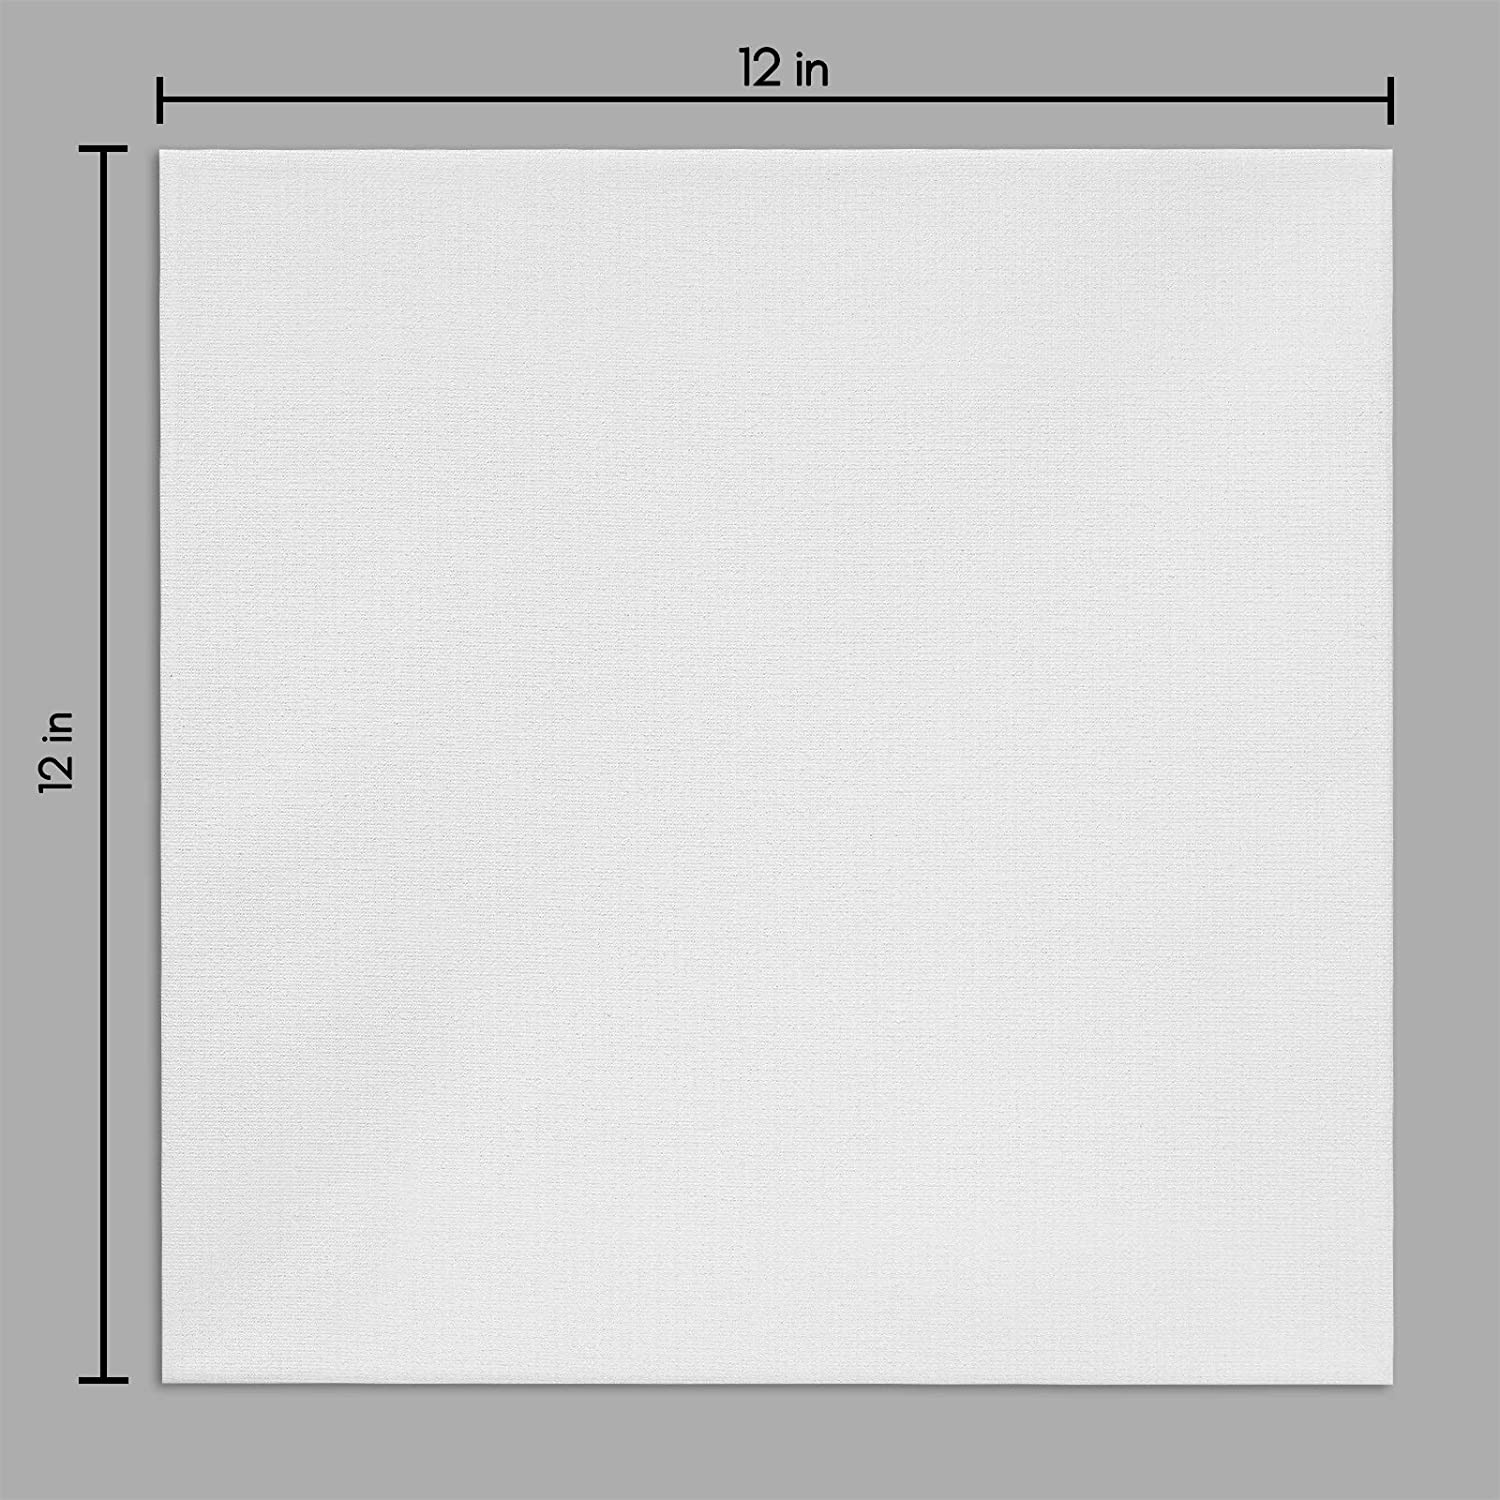 miniature 27 - Americanflat Stretched Canvas in White 100% Cotton Wooden Frames & Acid Free